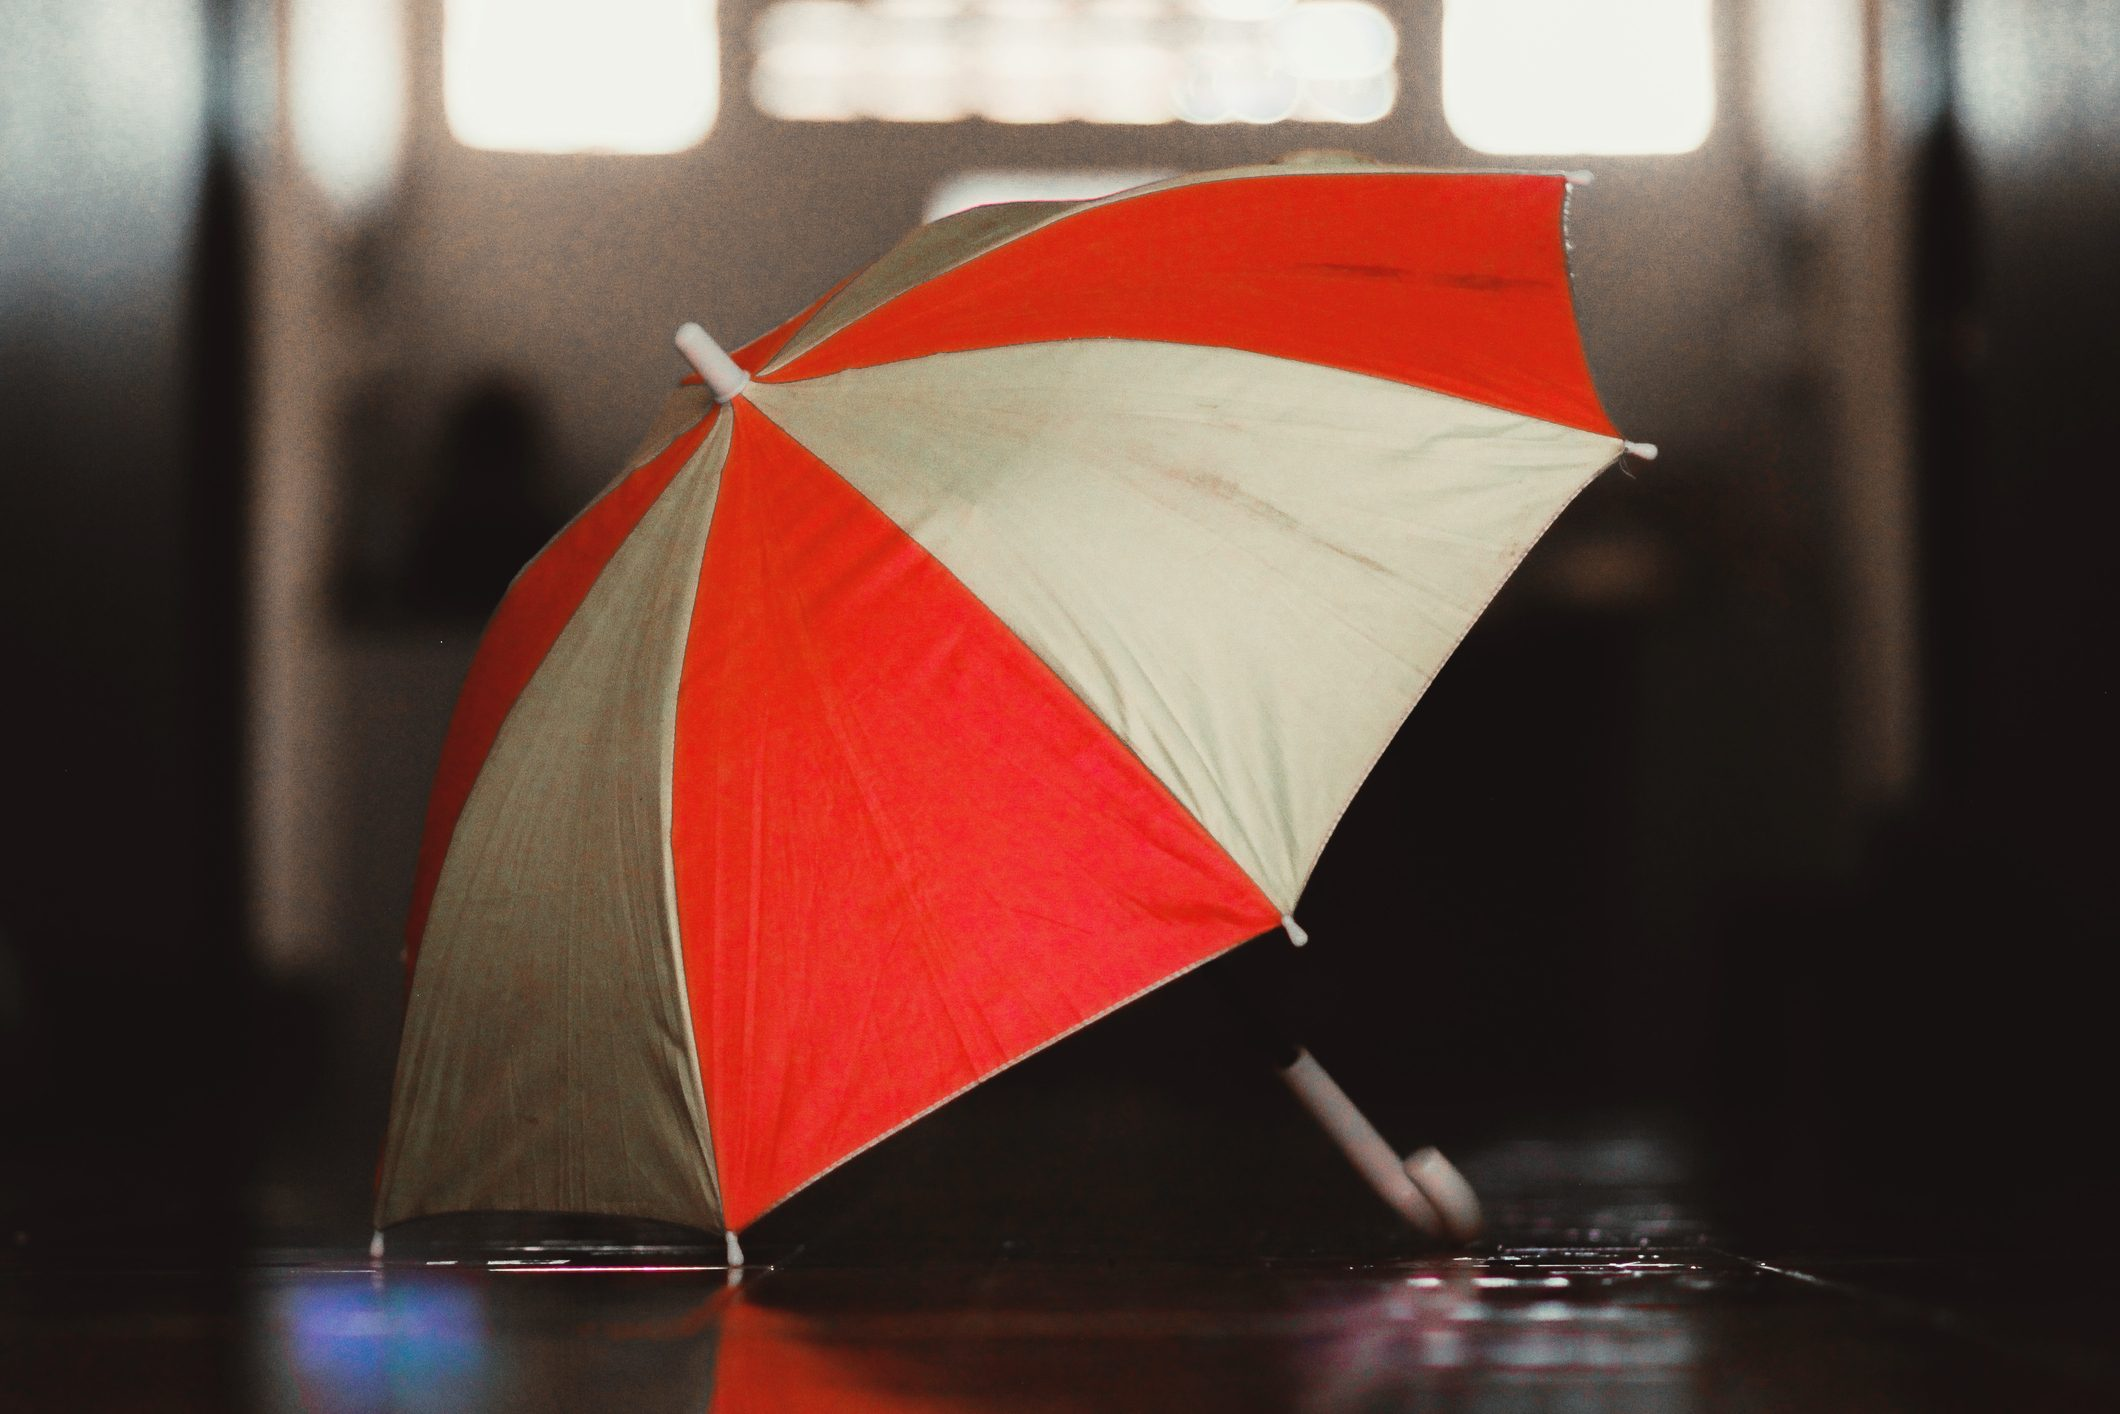 Close-Up Of Red And White Striped Umbrella